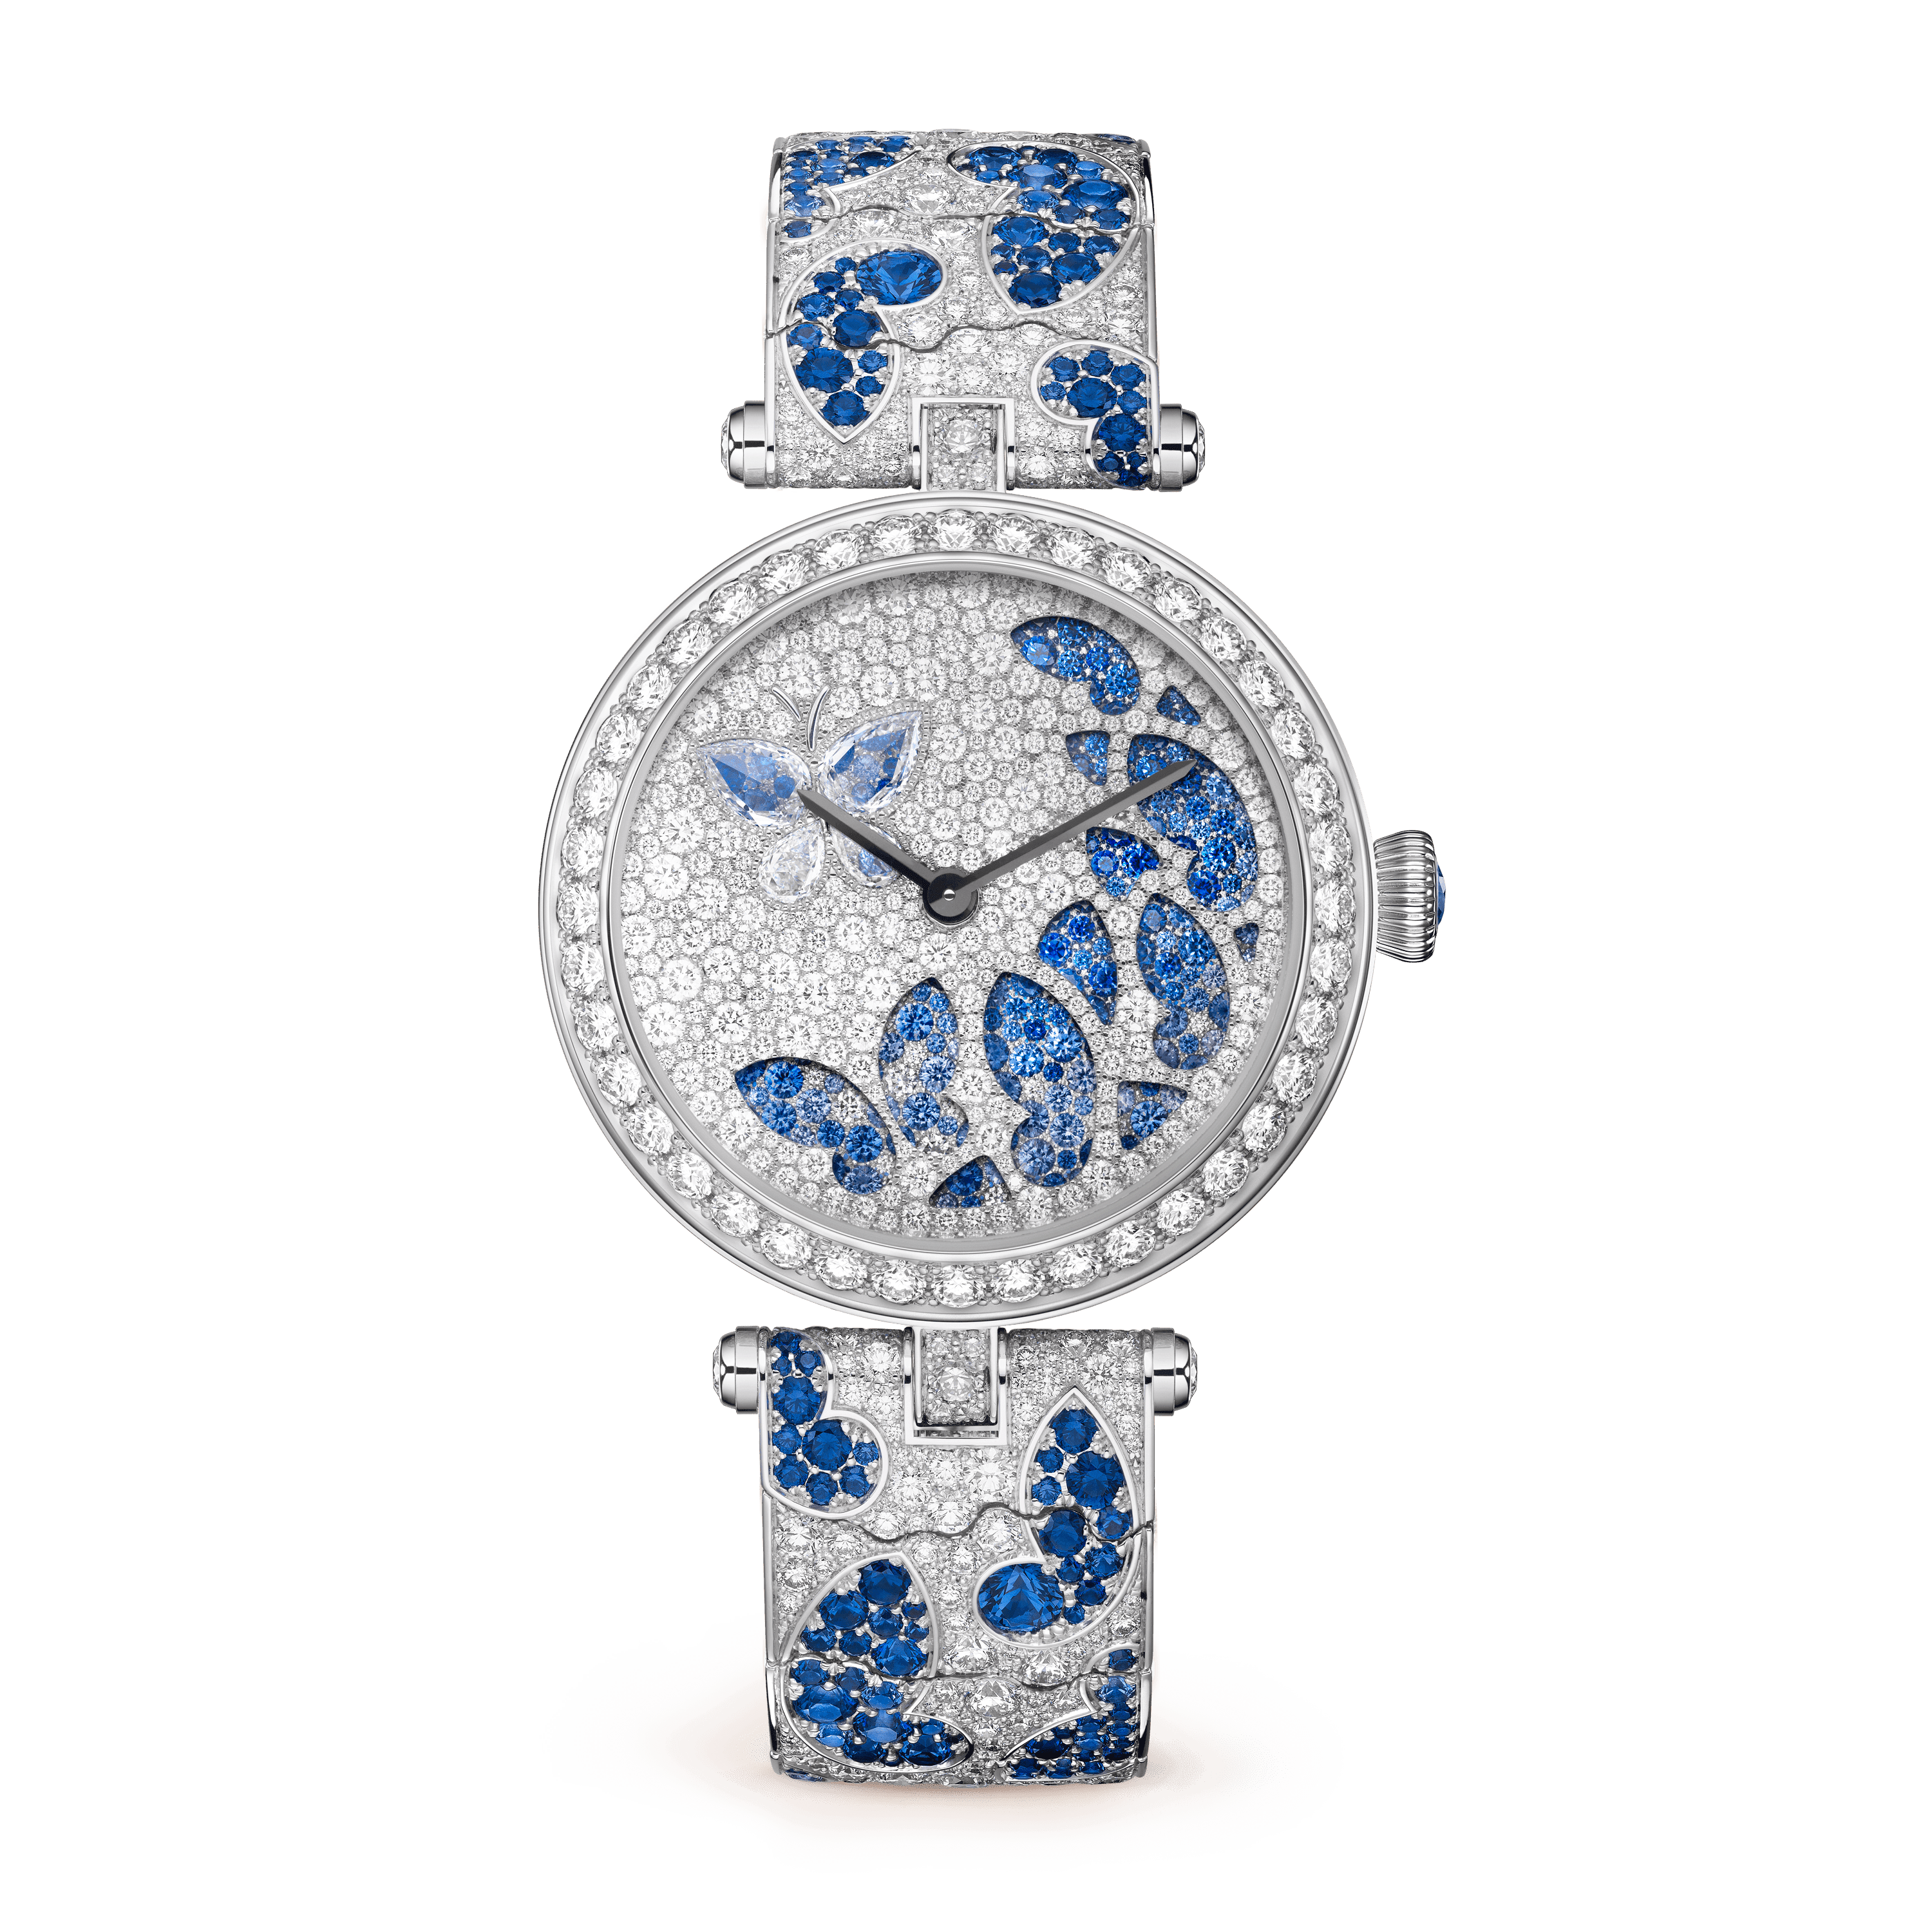 Lady Nuit des Papillons Watch,Gold - Front View - VCARO8O100 - Van Cleef & Arpels